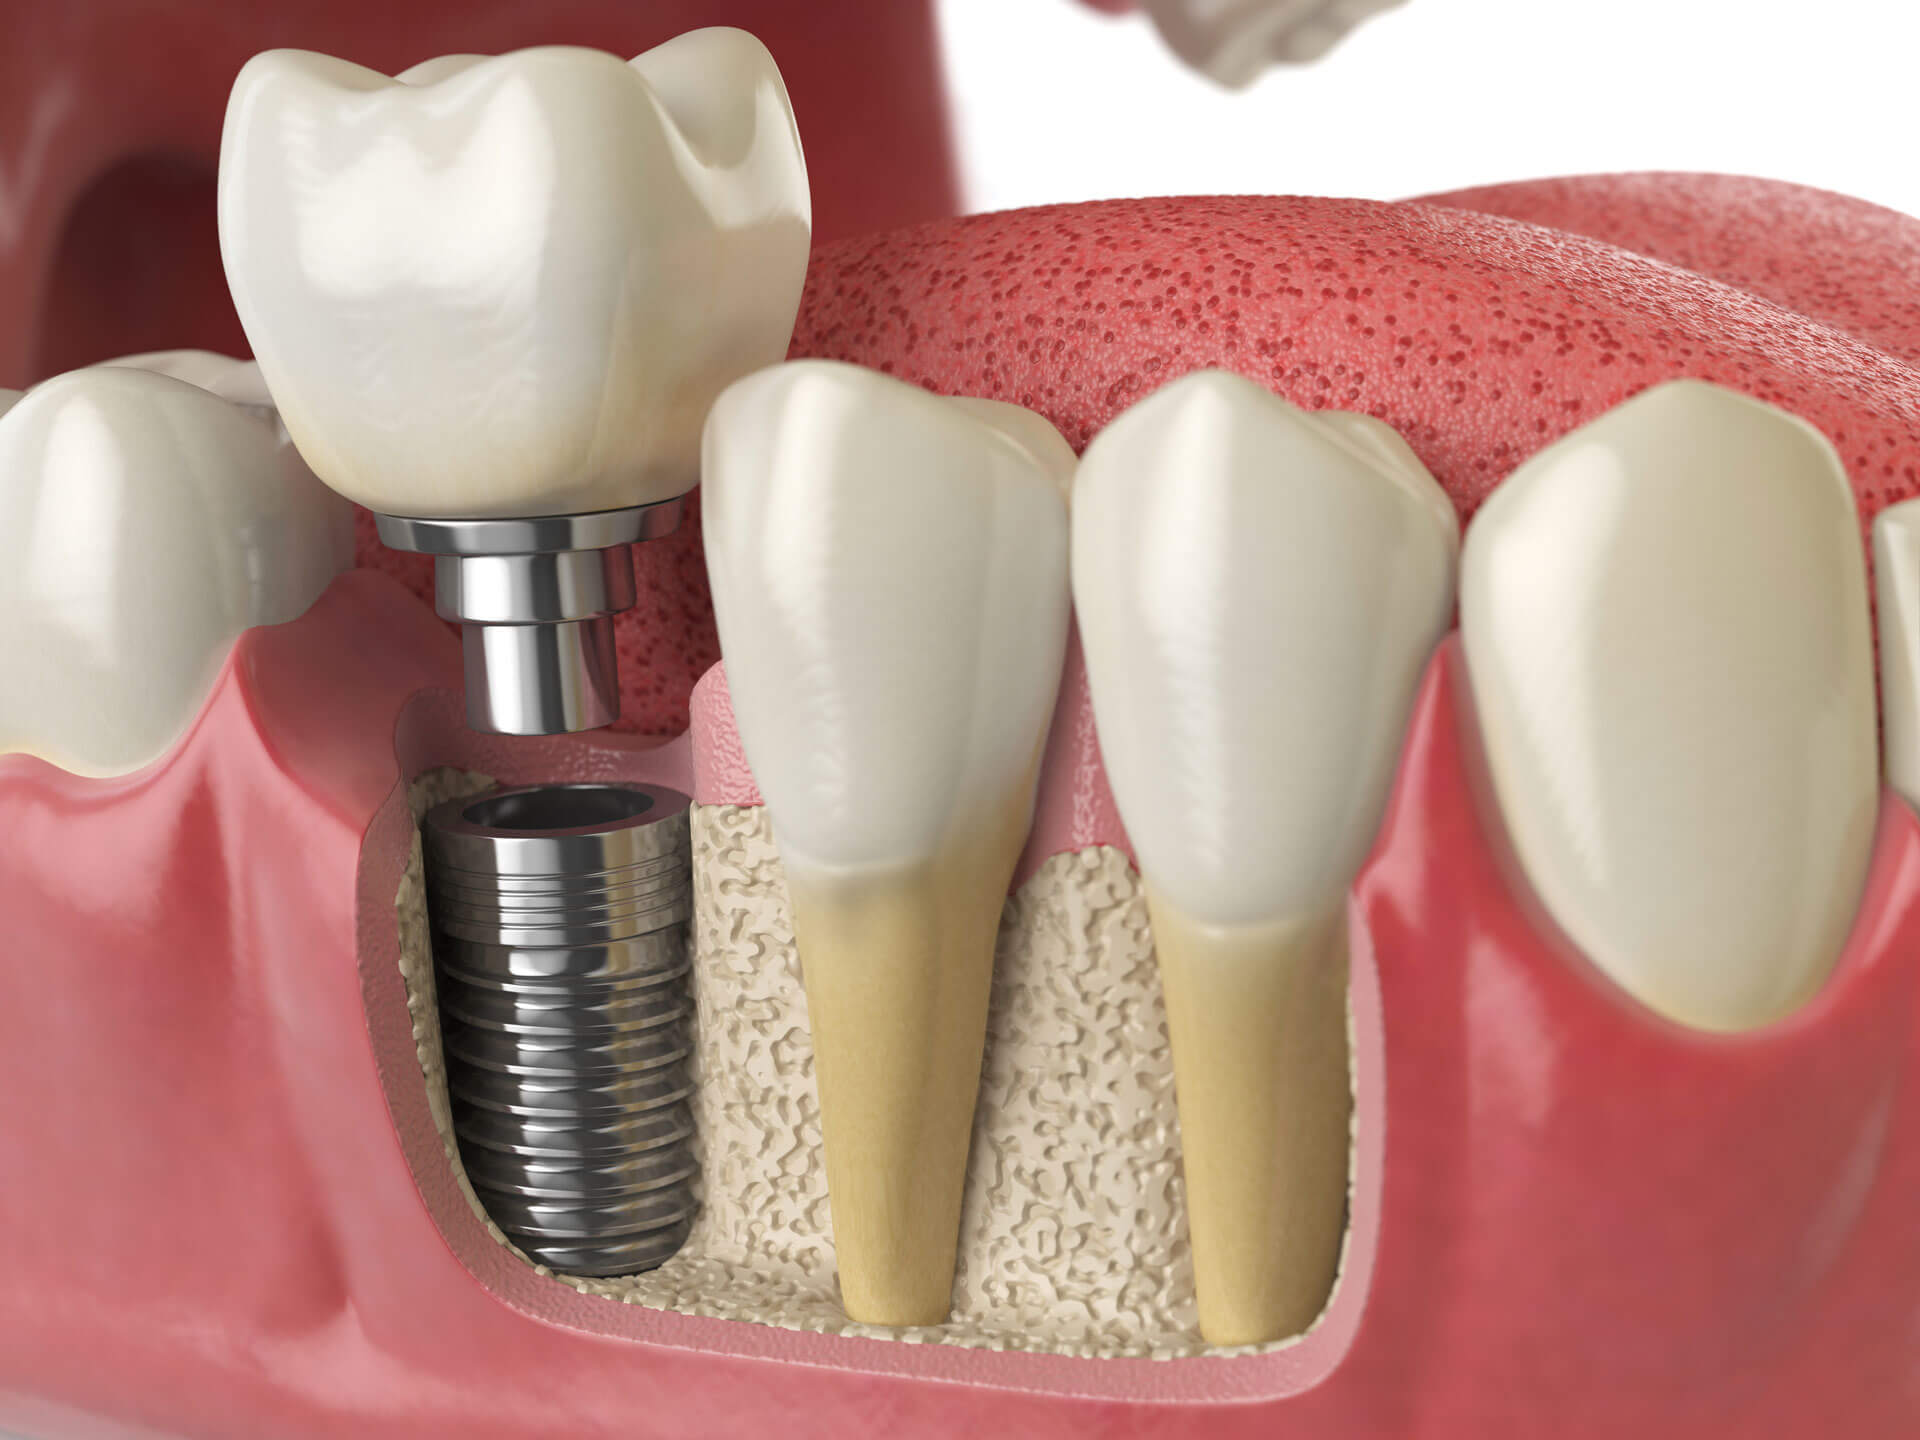 Implant dentaire : Comment l'implant est devenu populaire ?